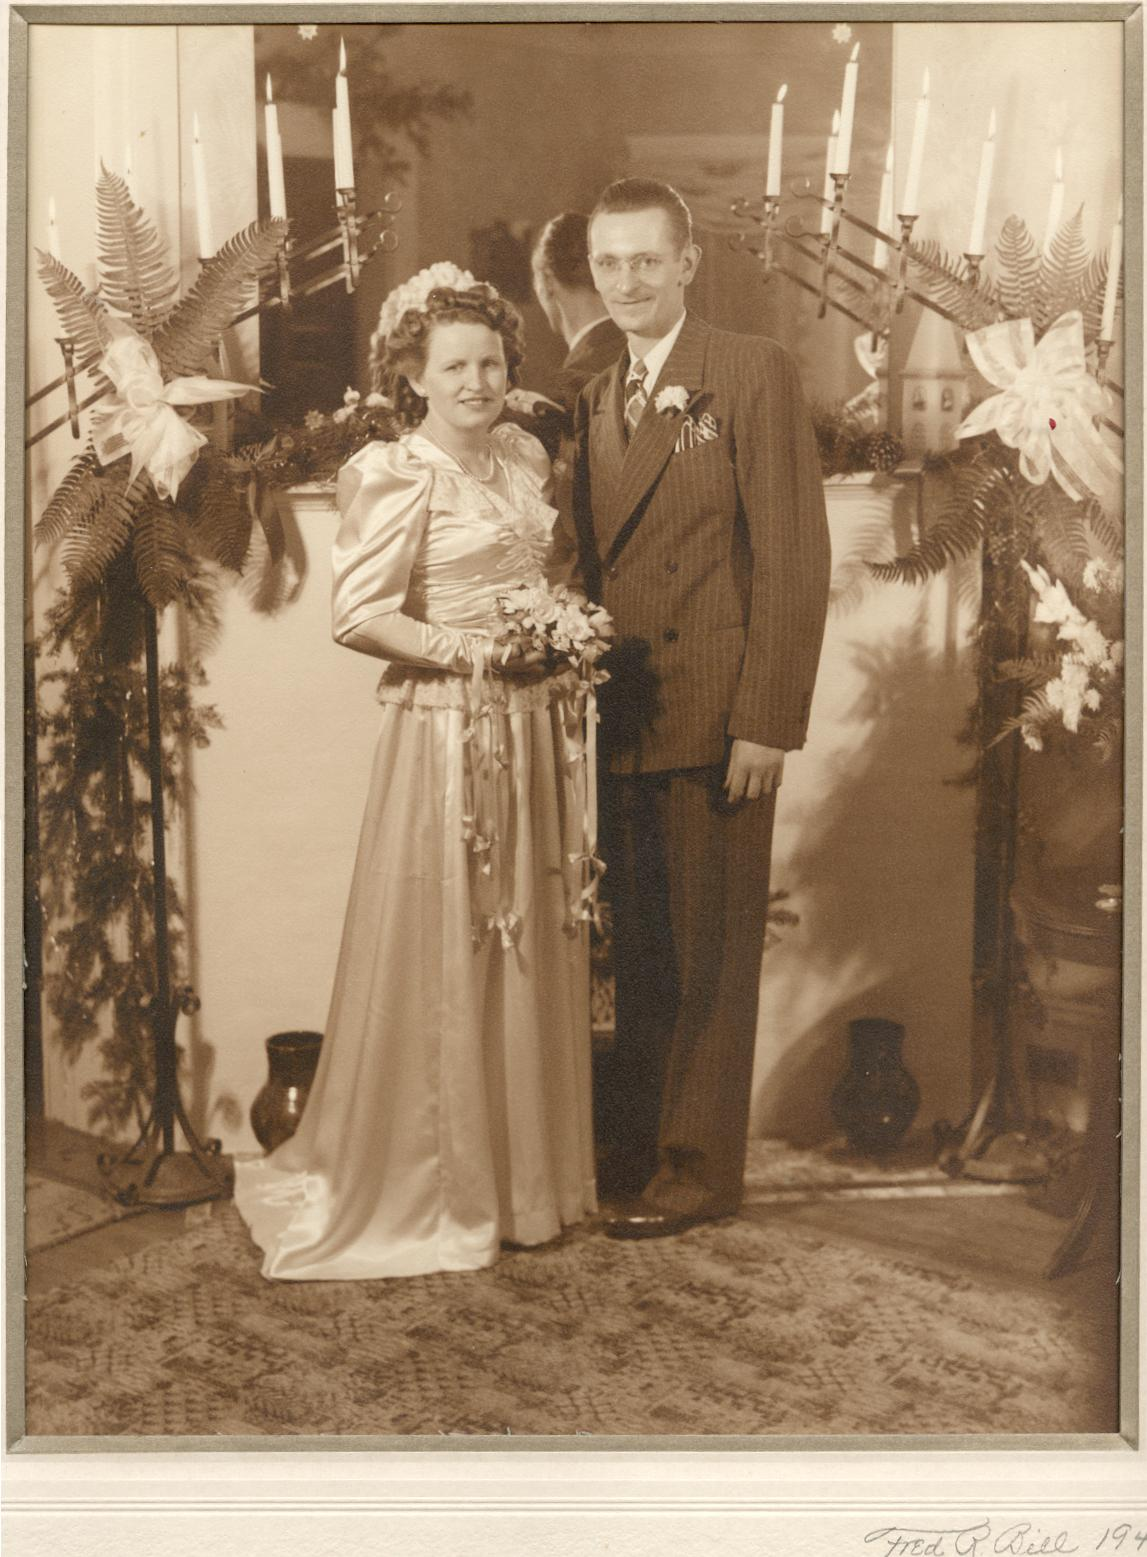 Evelyn and Edward Czernek wedding